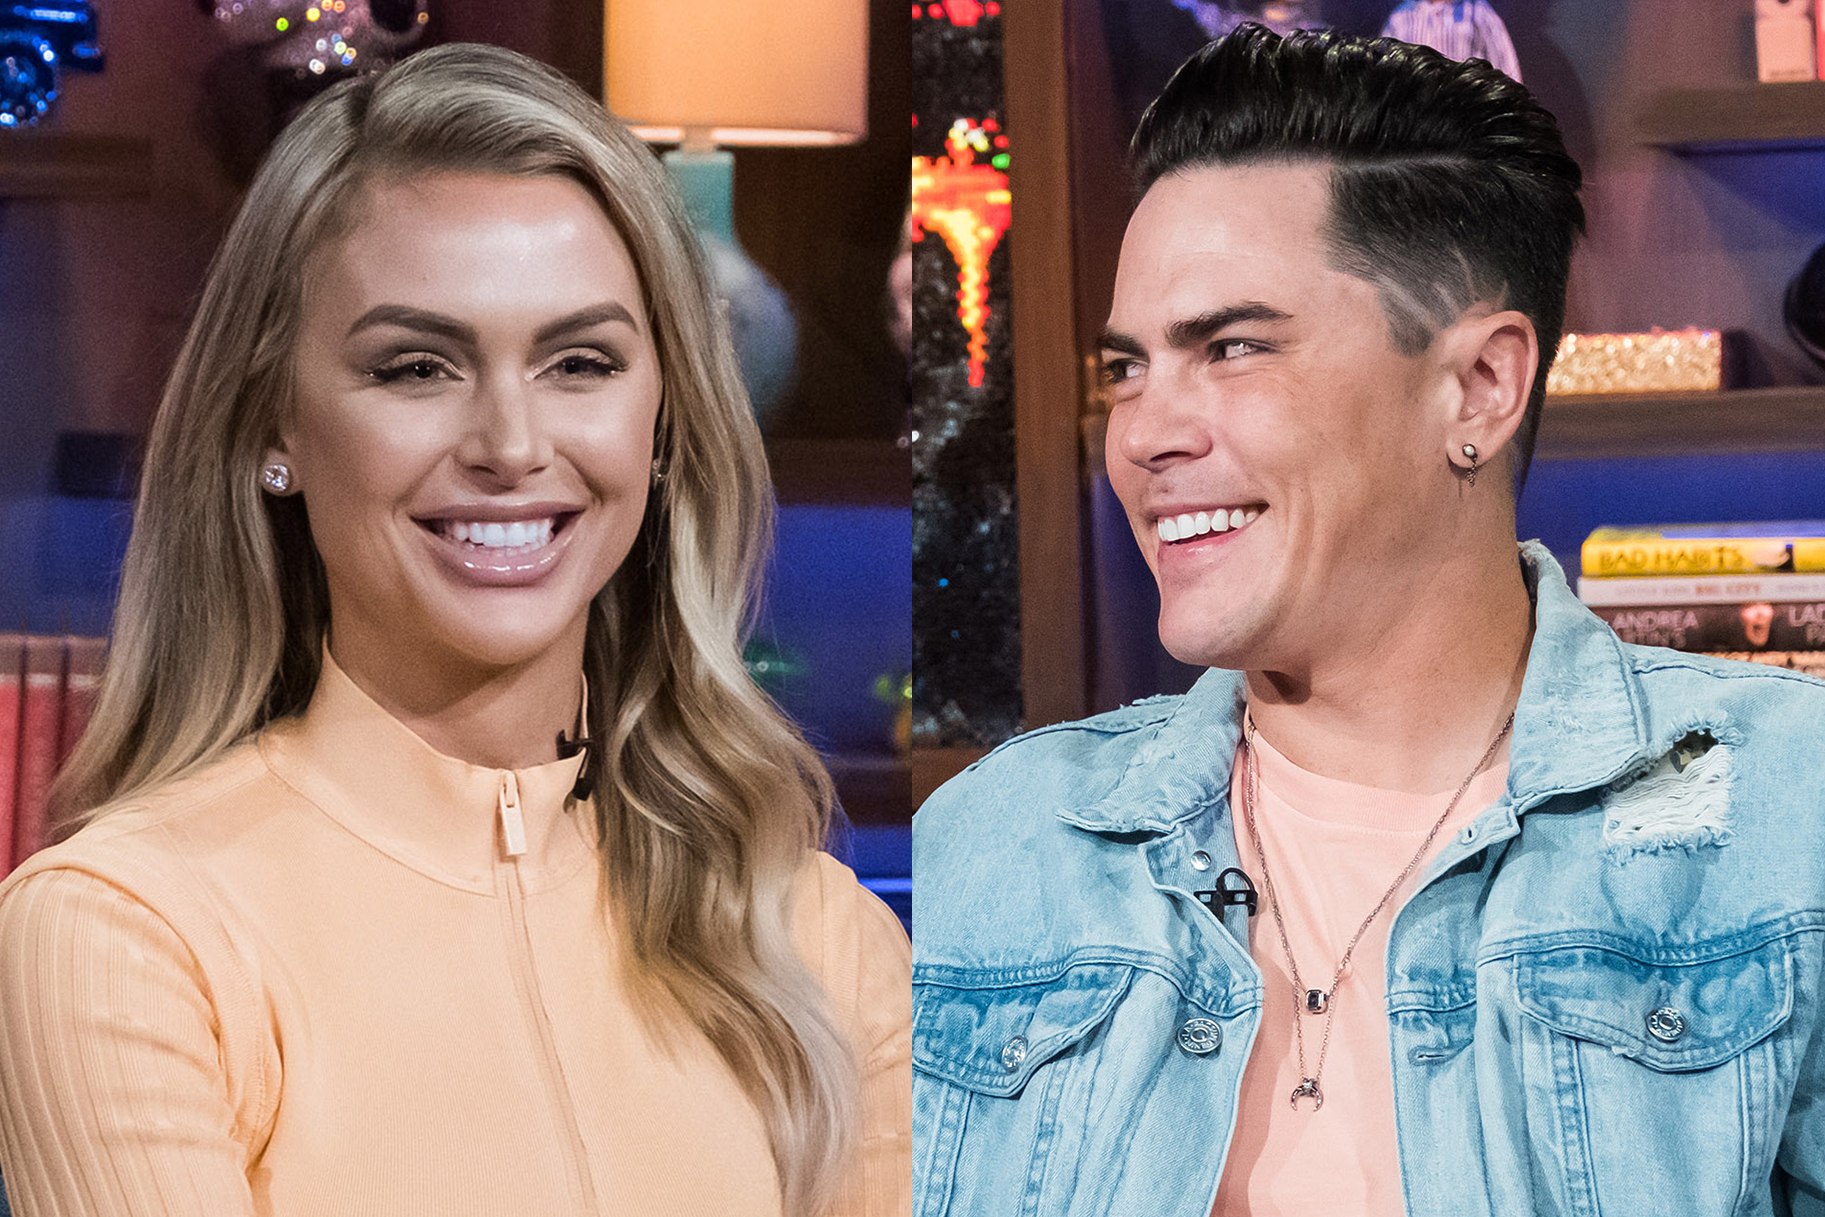 Tom Sandoval and Lala Kent